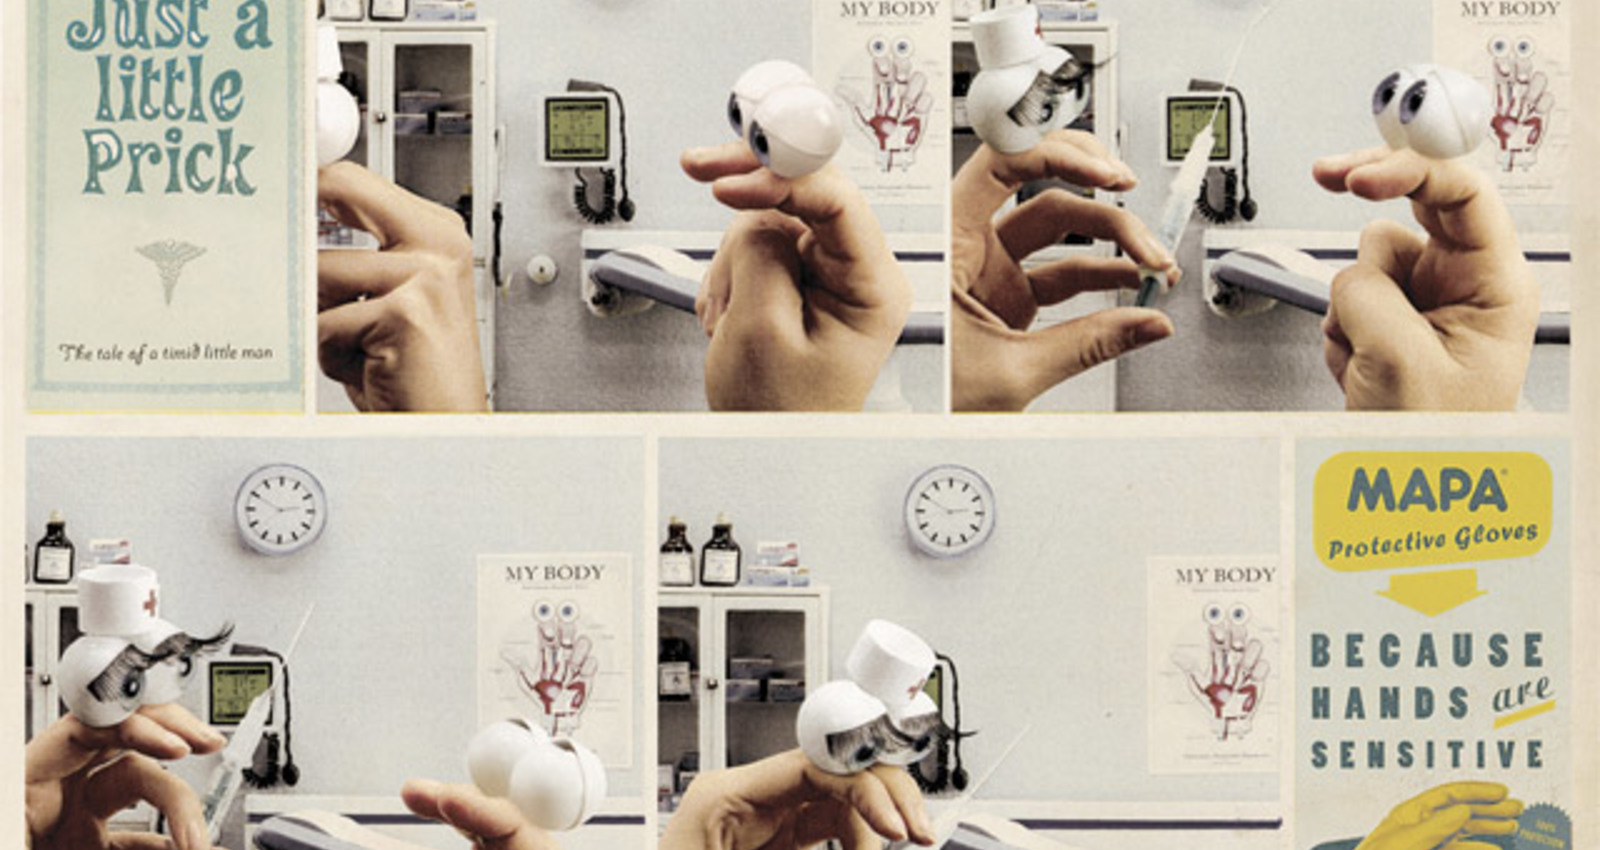 Sensitive hands campaign